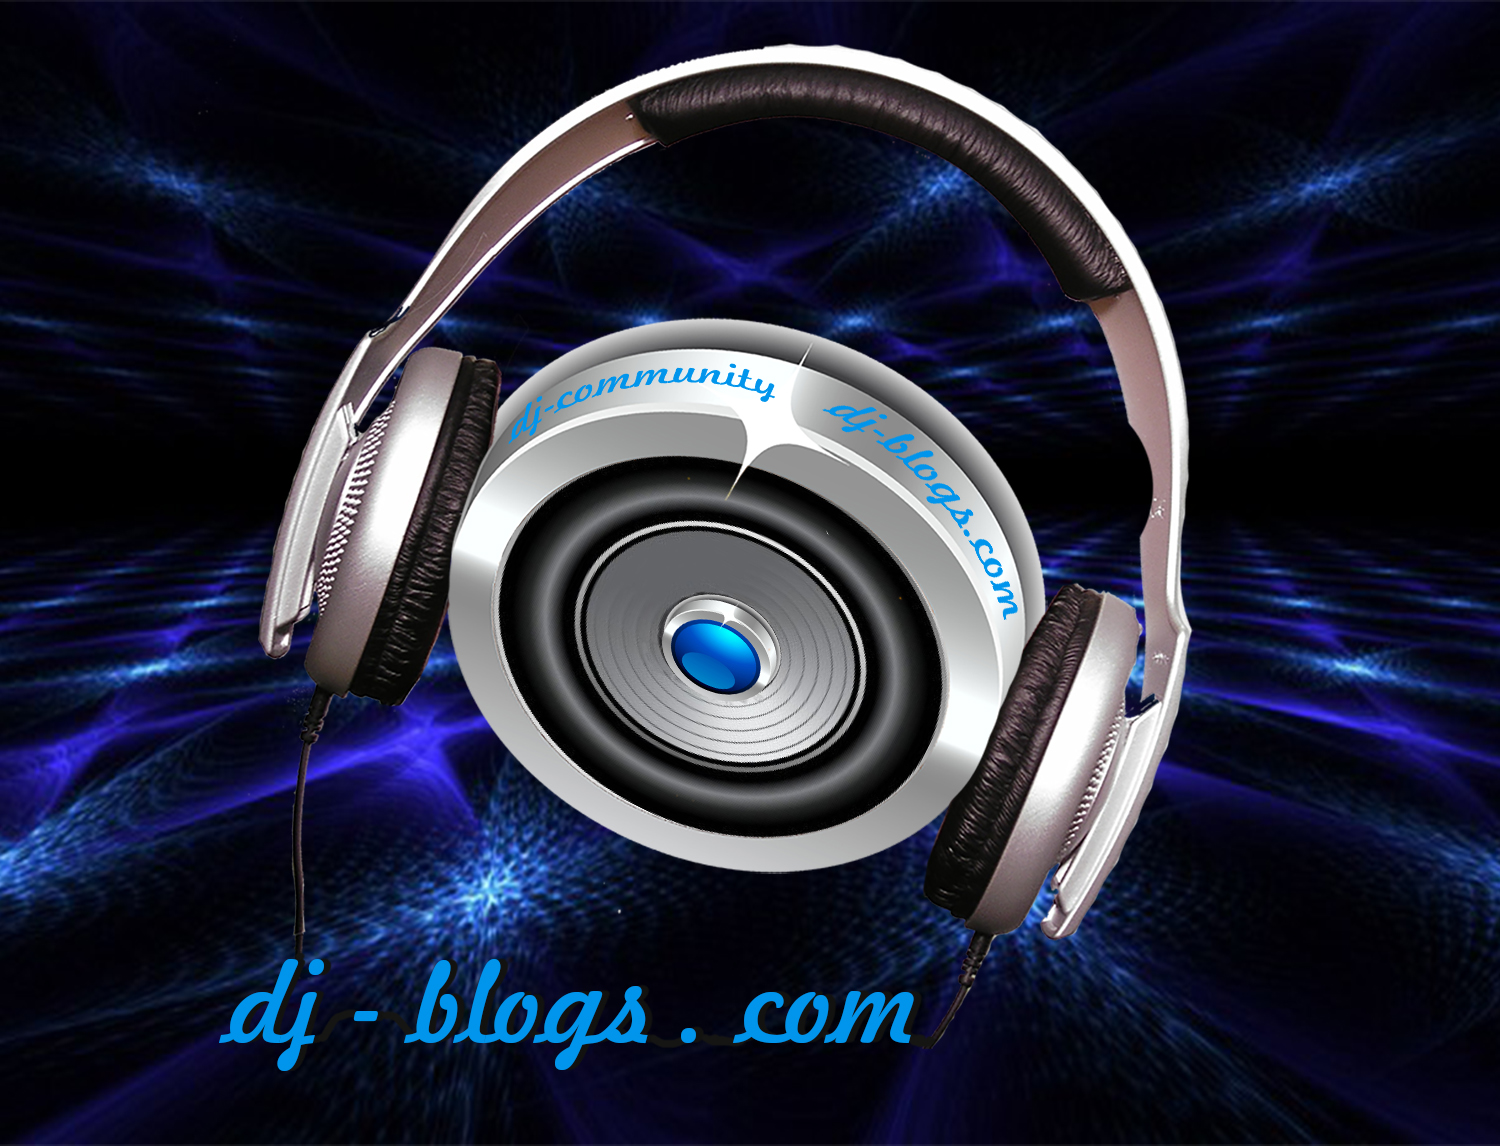 dj-blogs.com profil picture